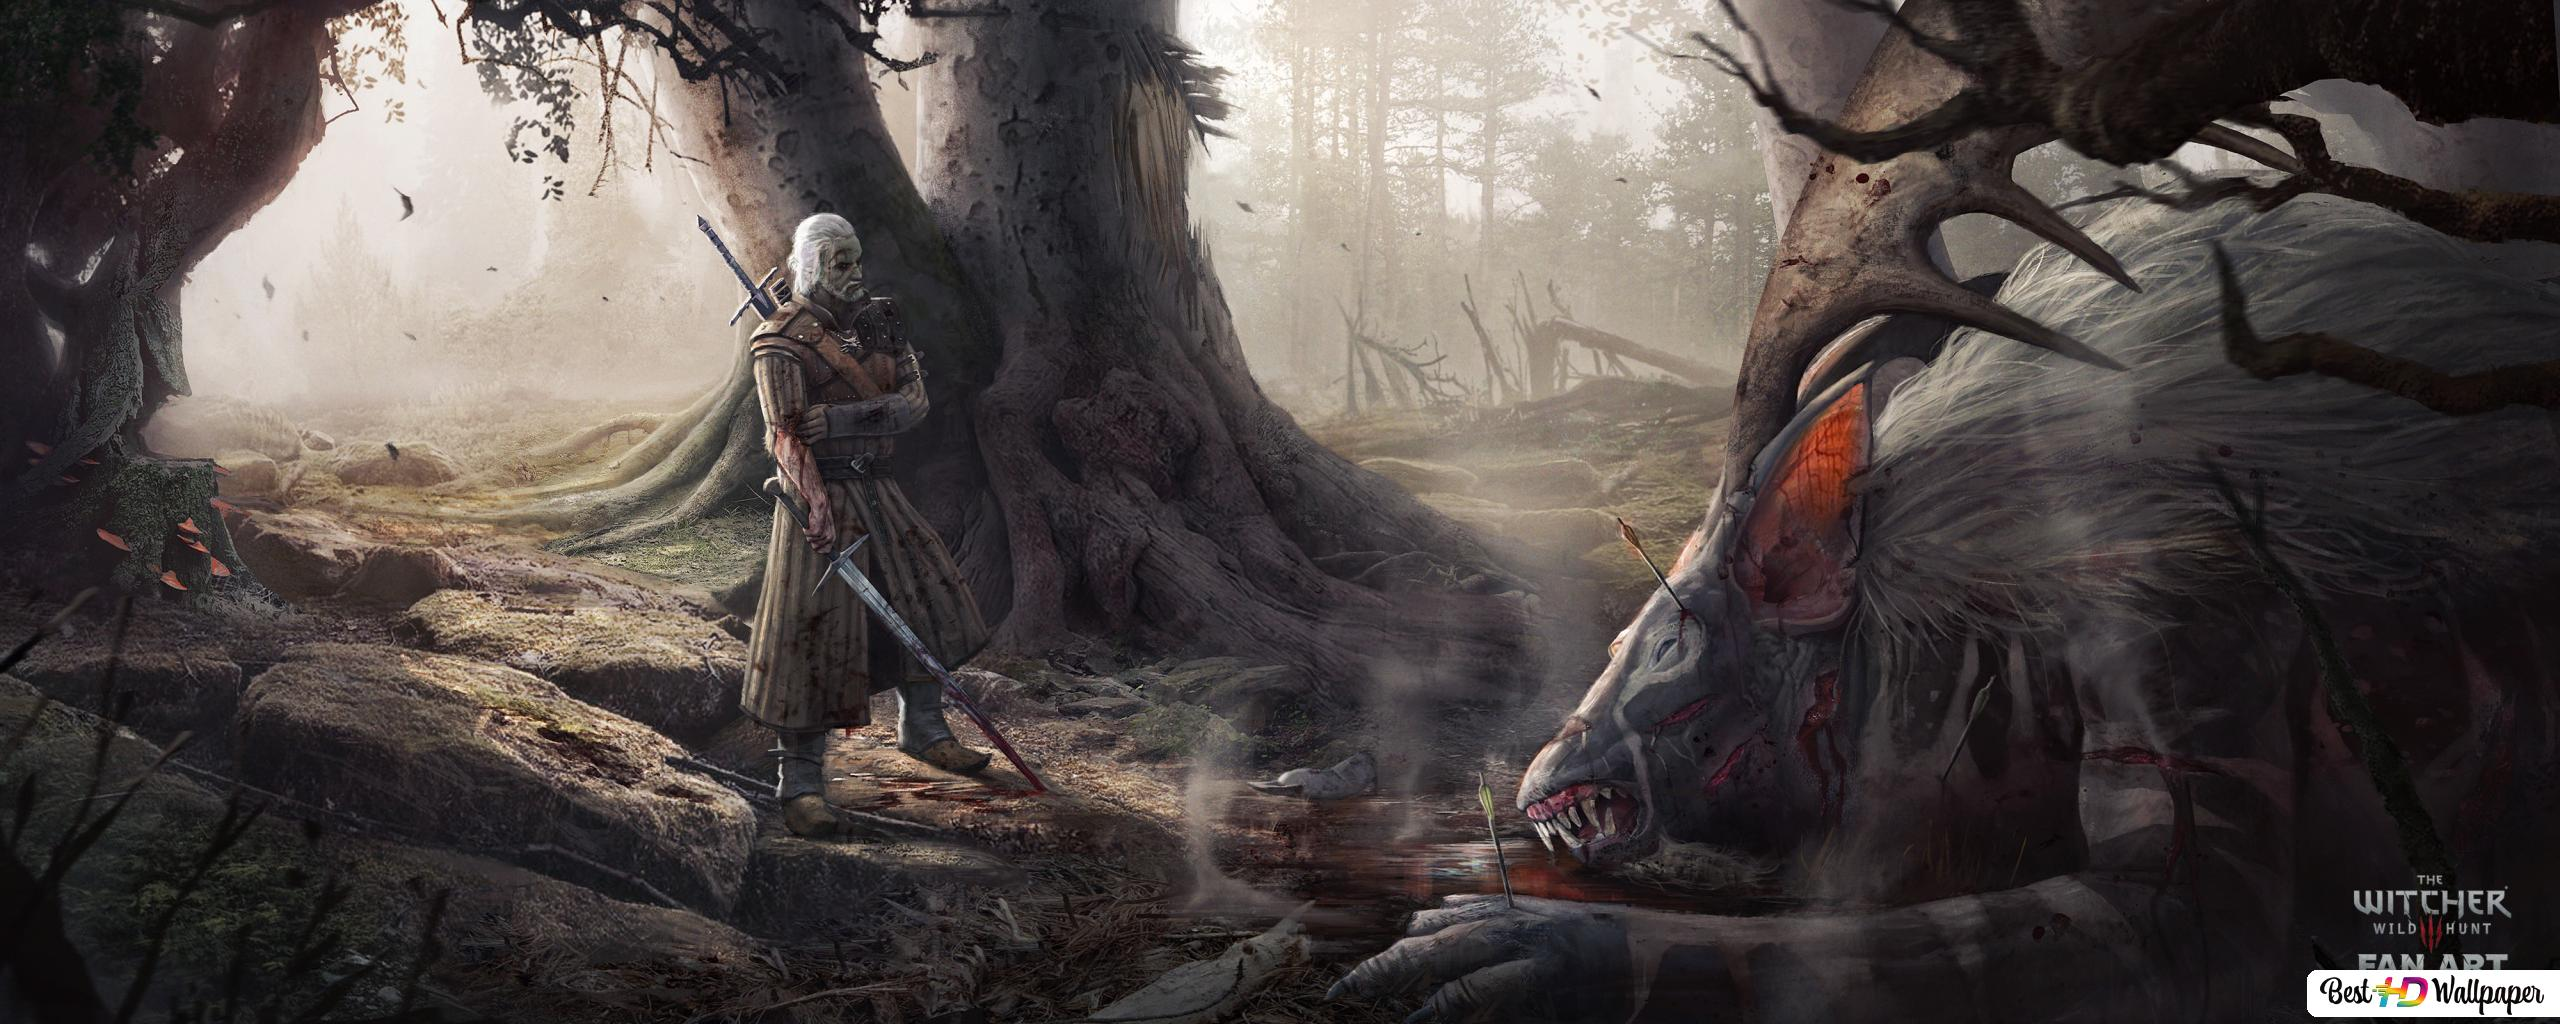 The Witcher 3 Wild Hunt Forest Fanart Hd Wallpaper Download